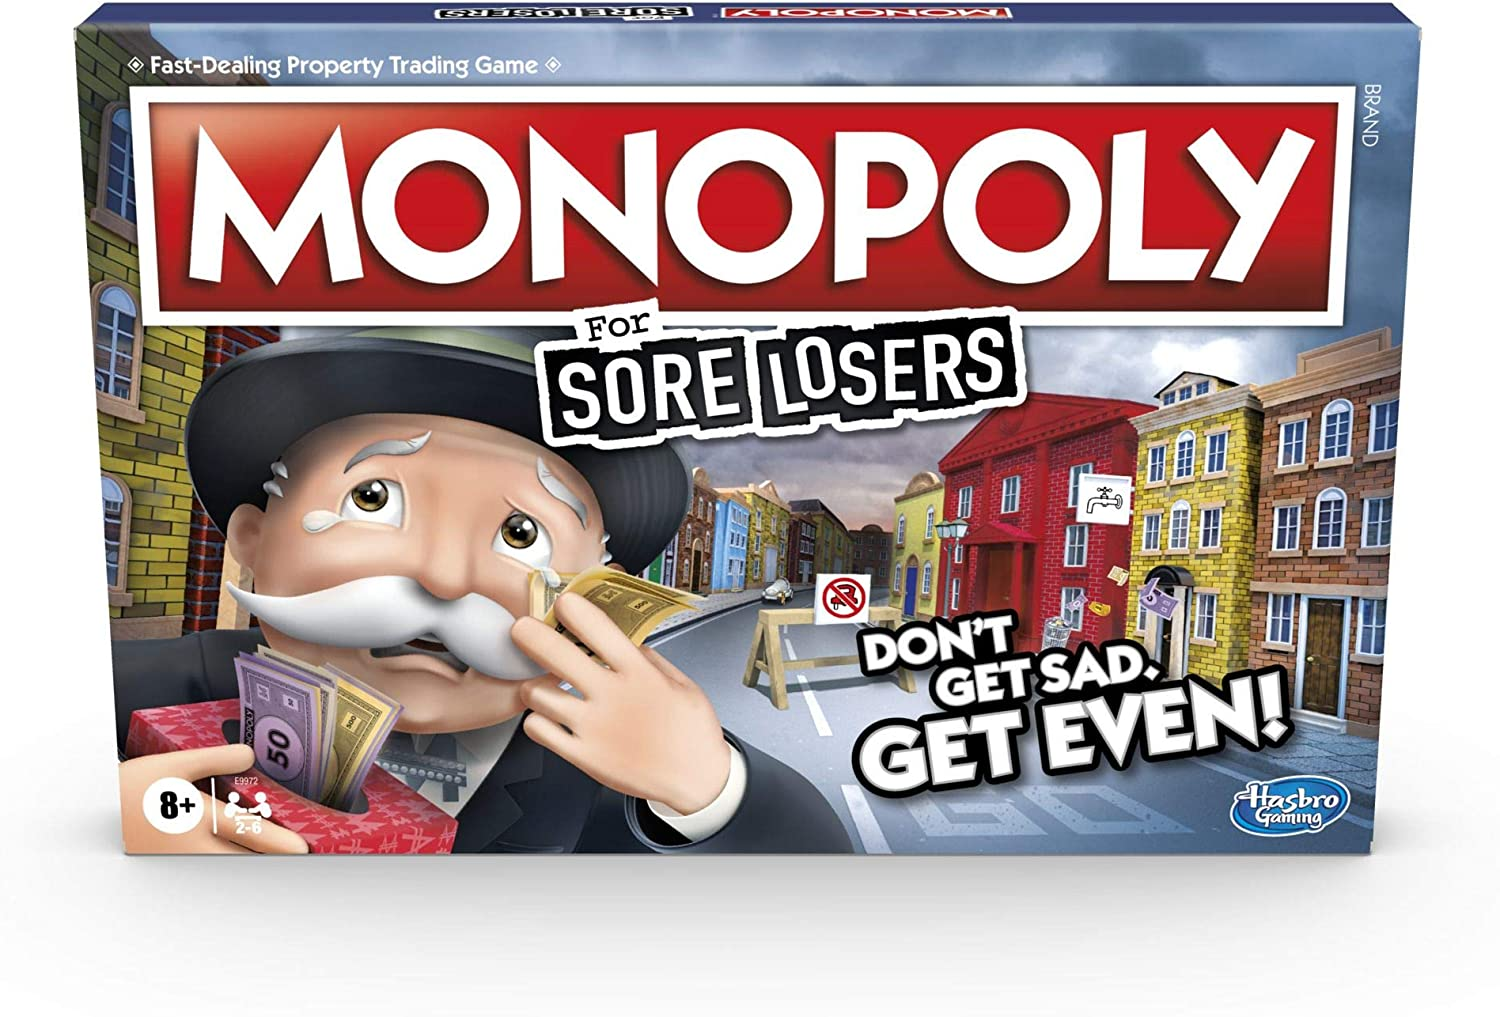 Monopoly - Sore Losers Edition